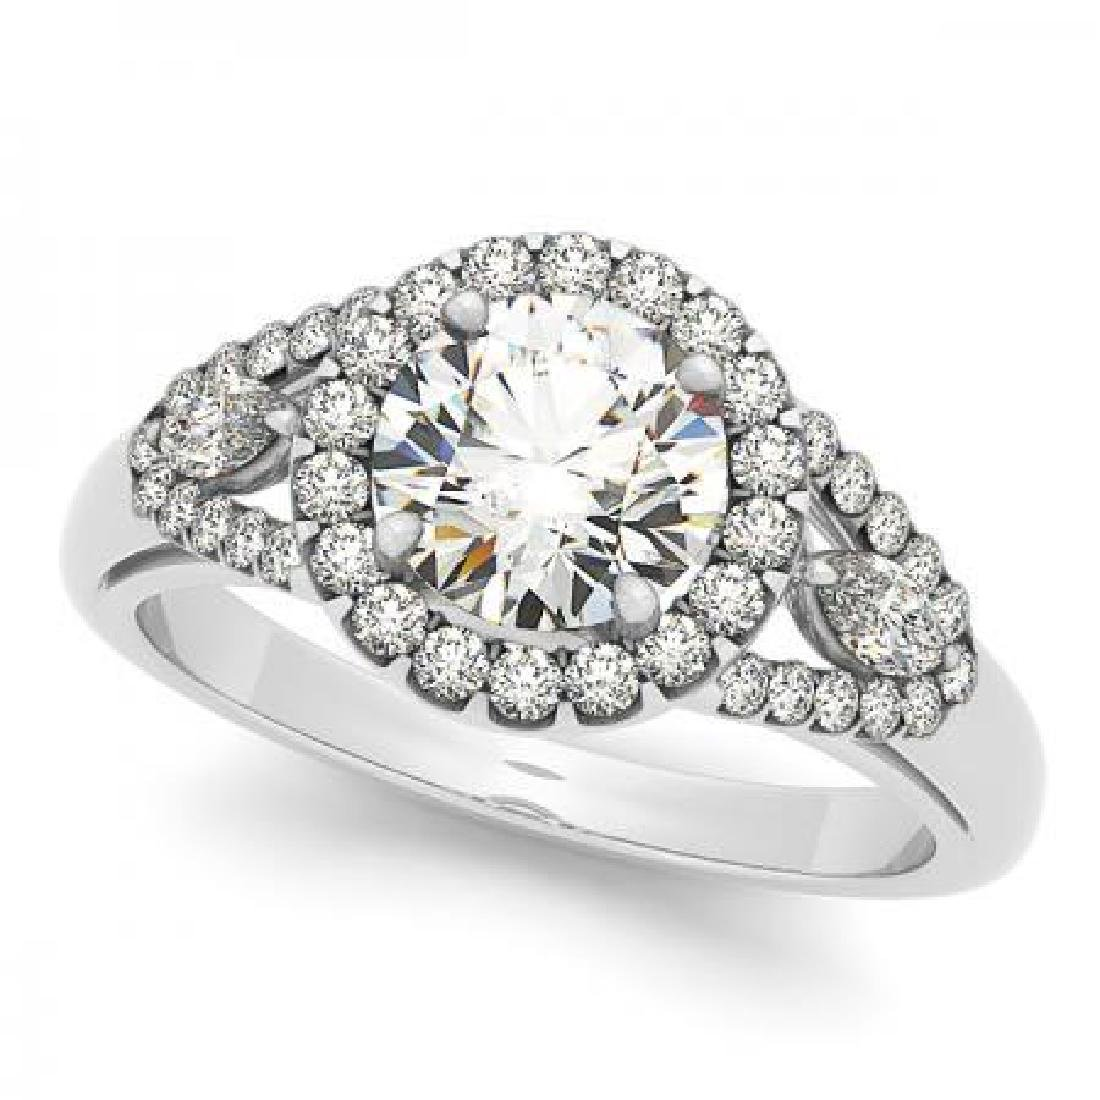 CERTIFIED PLATINUM 2.21 CT G-H/VS-SI1 DIAMOND HALO ENGA